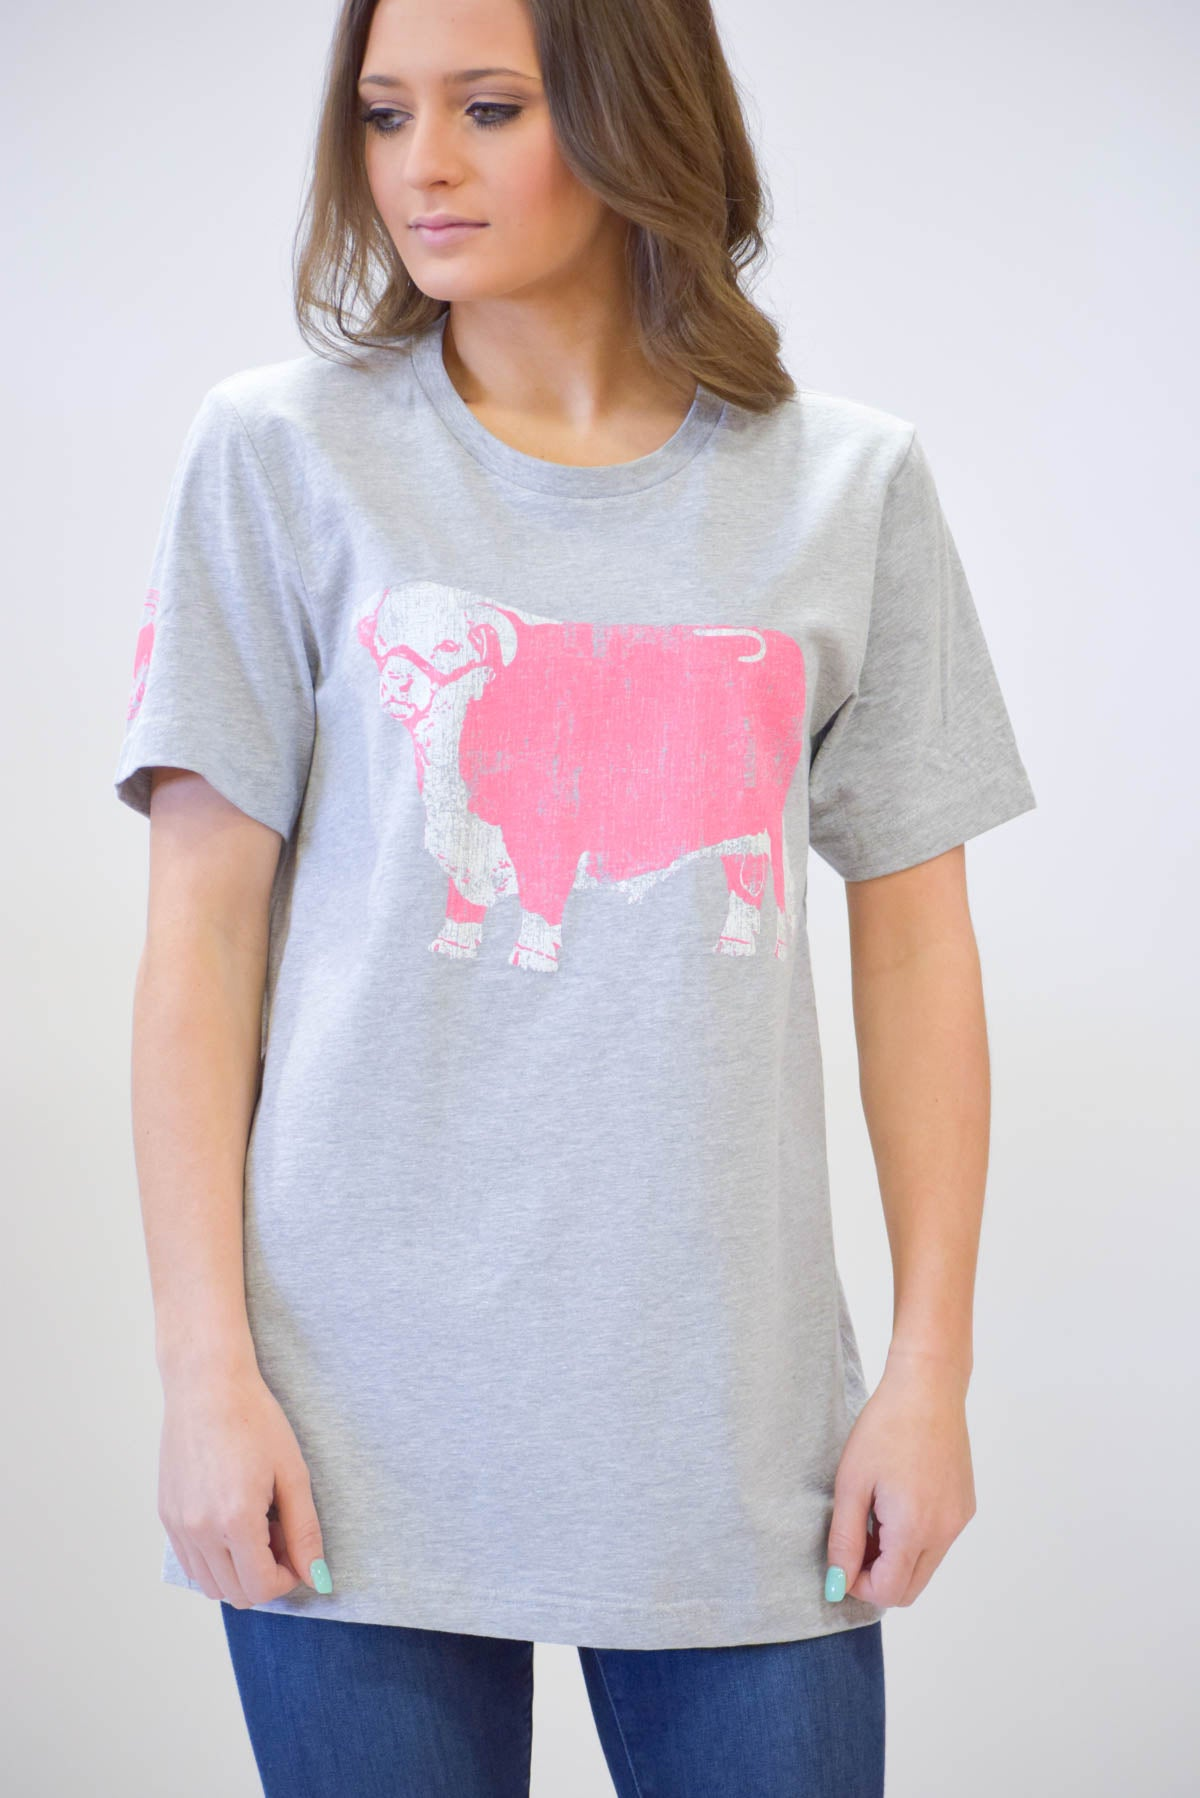 Lazy J Original Hereford Pink Jughead Gray Short Sleeve T-Shirt